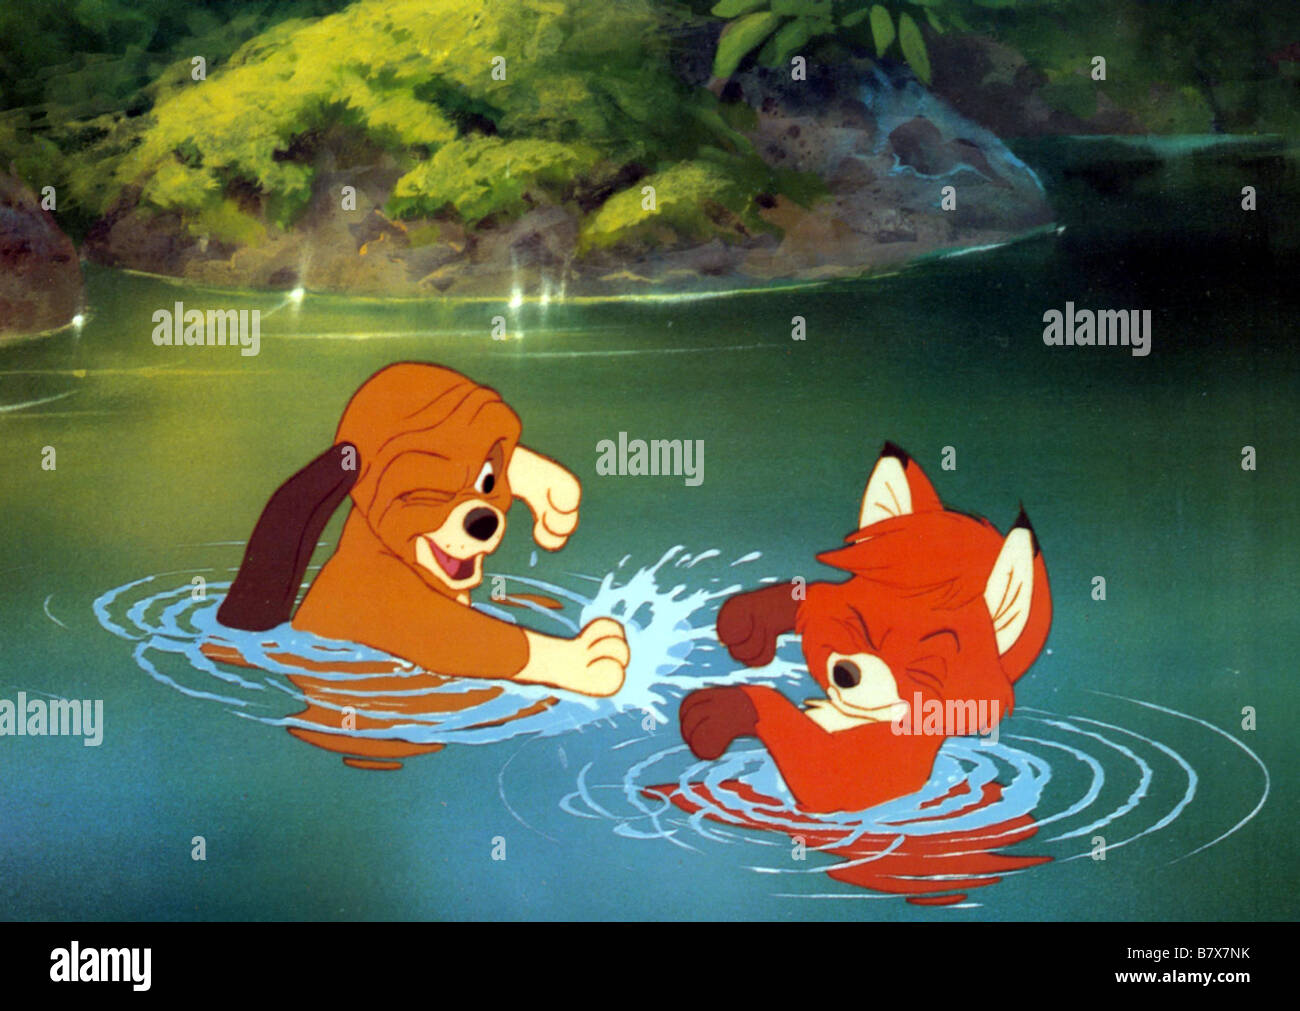 Rox Et Rouky The Fox And The Hound Year 1981 Animation Stock